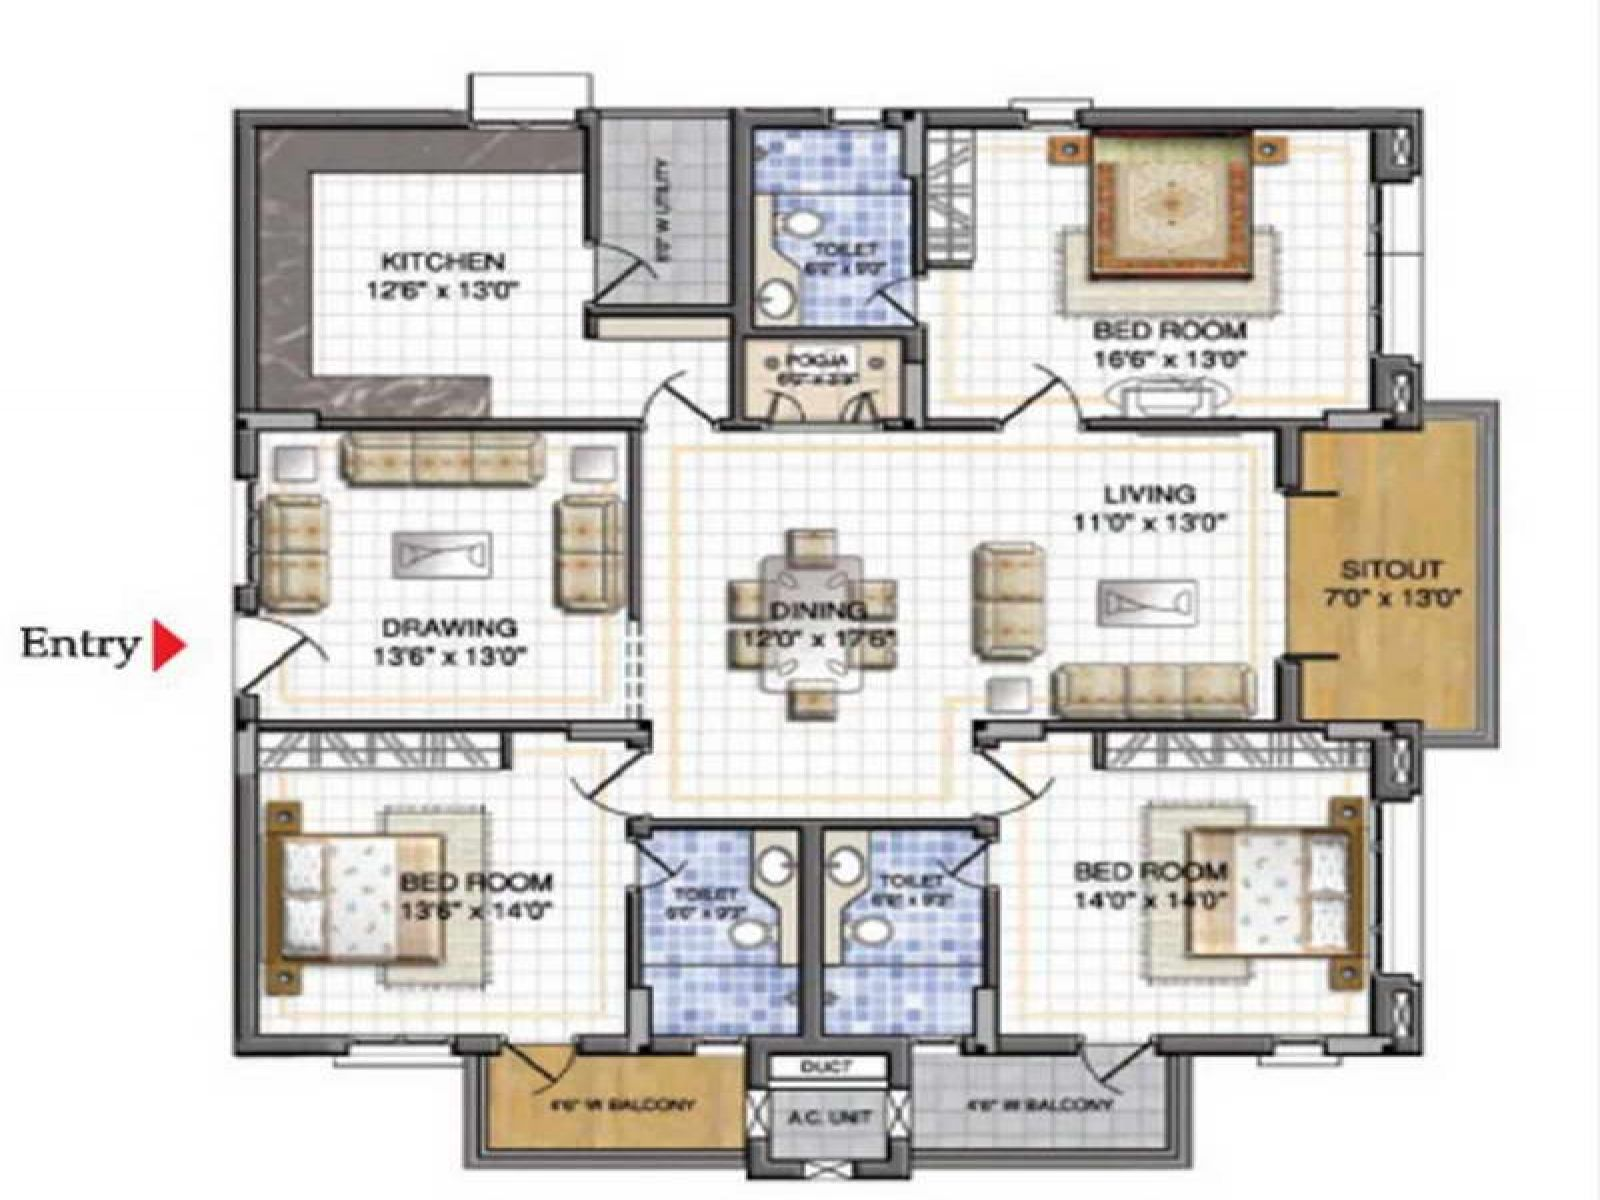 Sweet home 3d plans google search house designs Design your own house online free